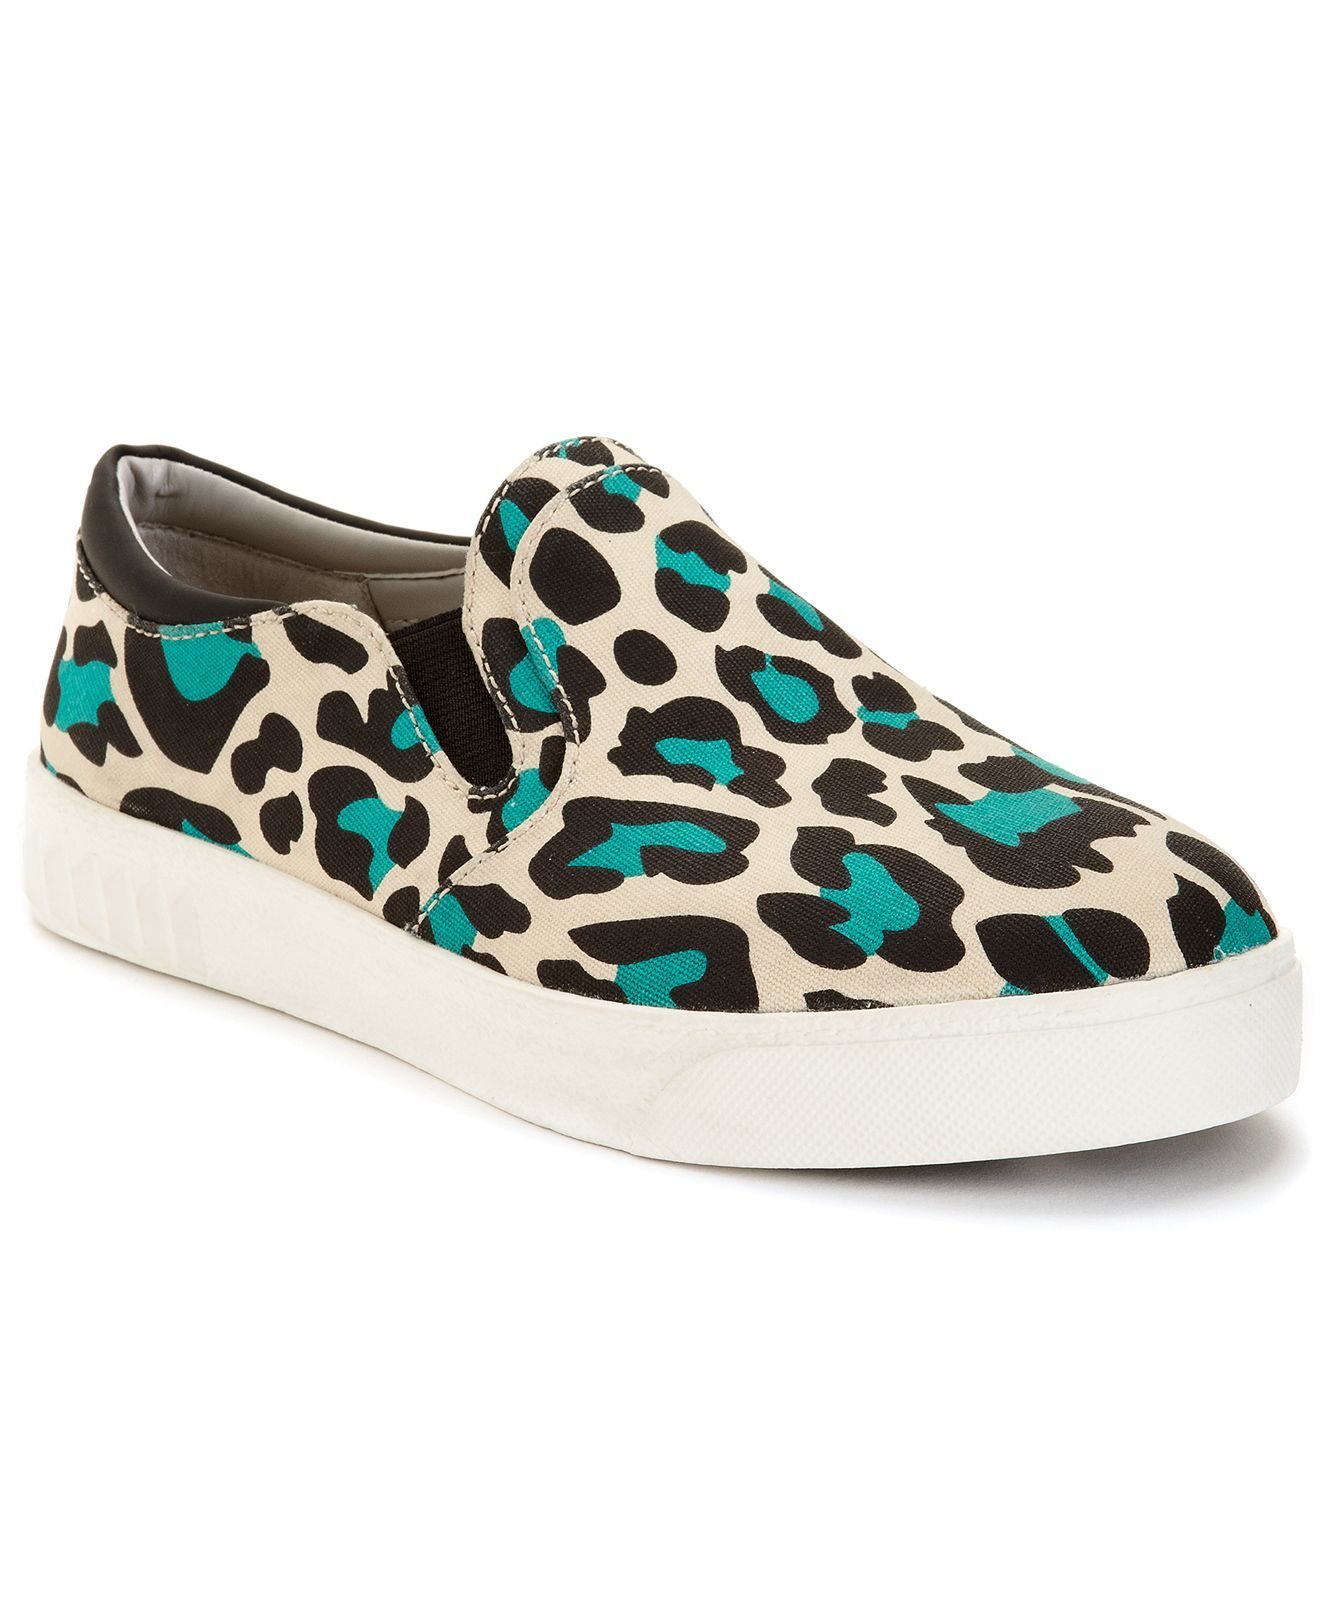 9da0f608e9ccc Circus by Sam Edelman Cruz Slip On Sneakers